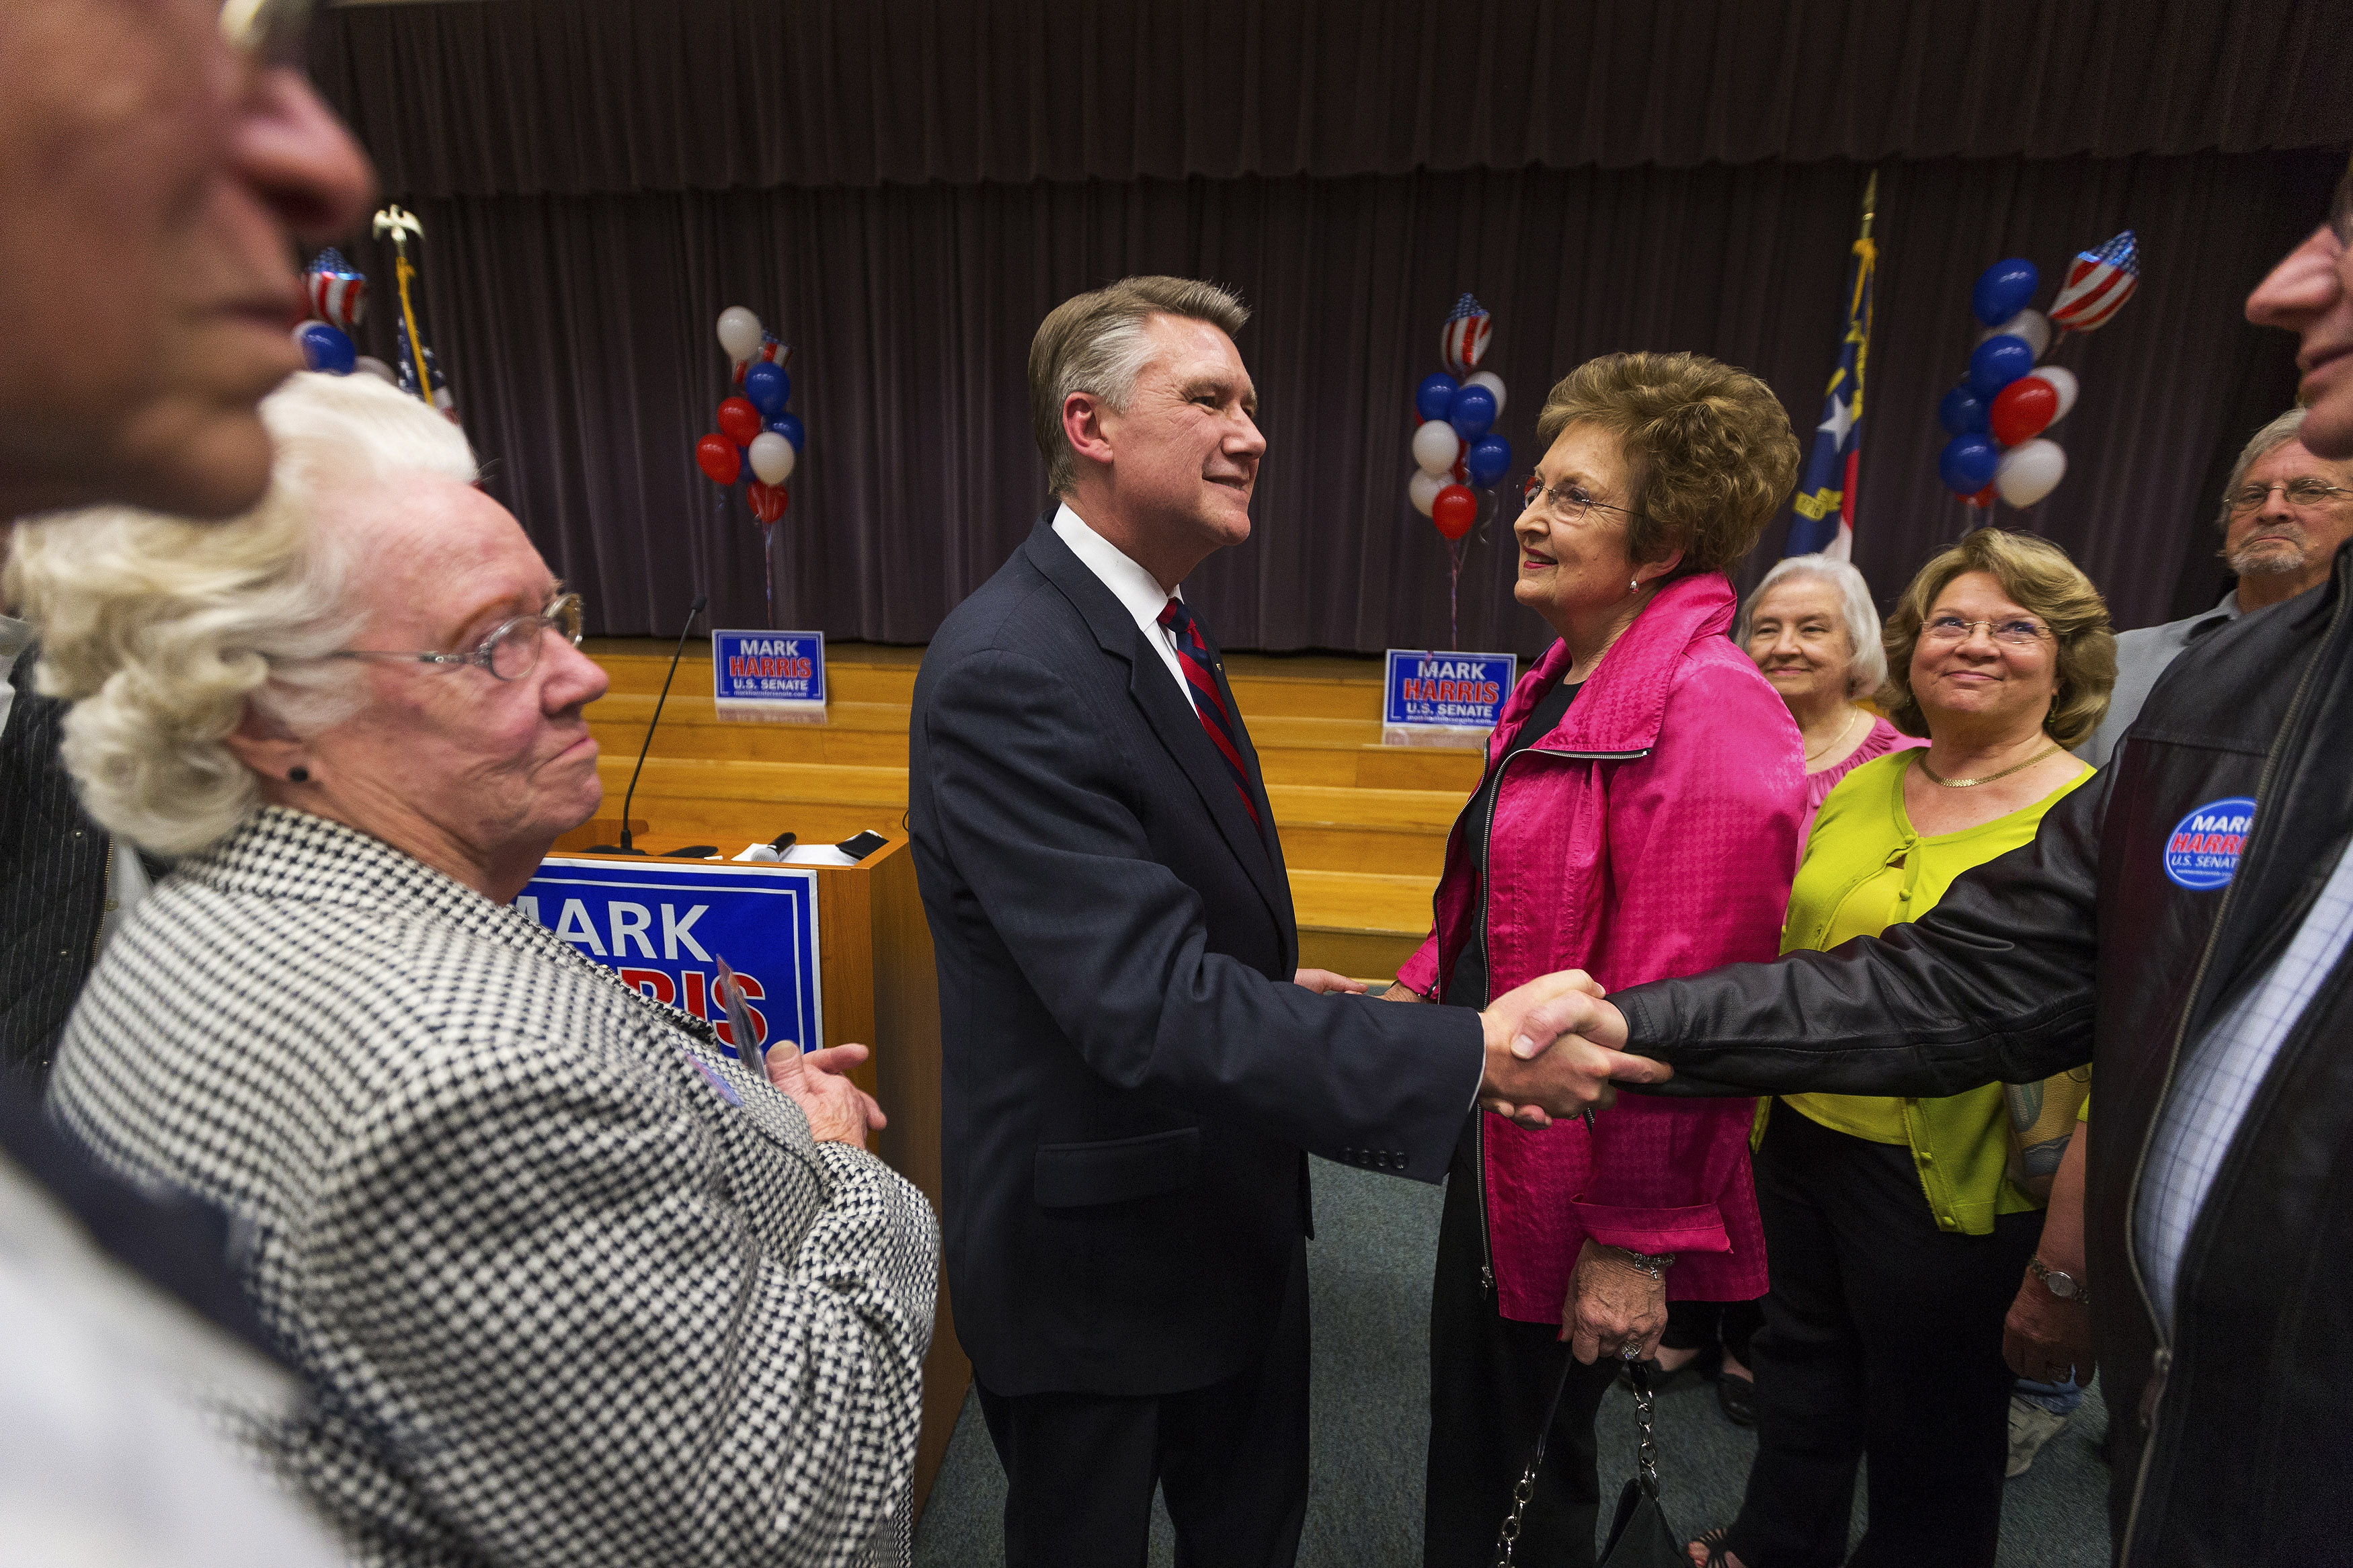 Republican candidate for the U.S. Senate Mark Harris shakes hands with a supporter after a volunteer meeting and rally at the Ardmore Auditorium in Winston-Salem, North Carolina April 8, 2014. REUTERS/Chris Keane